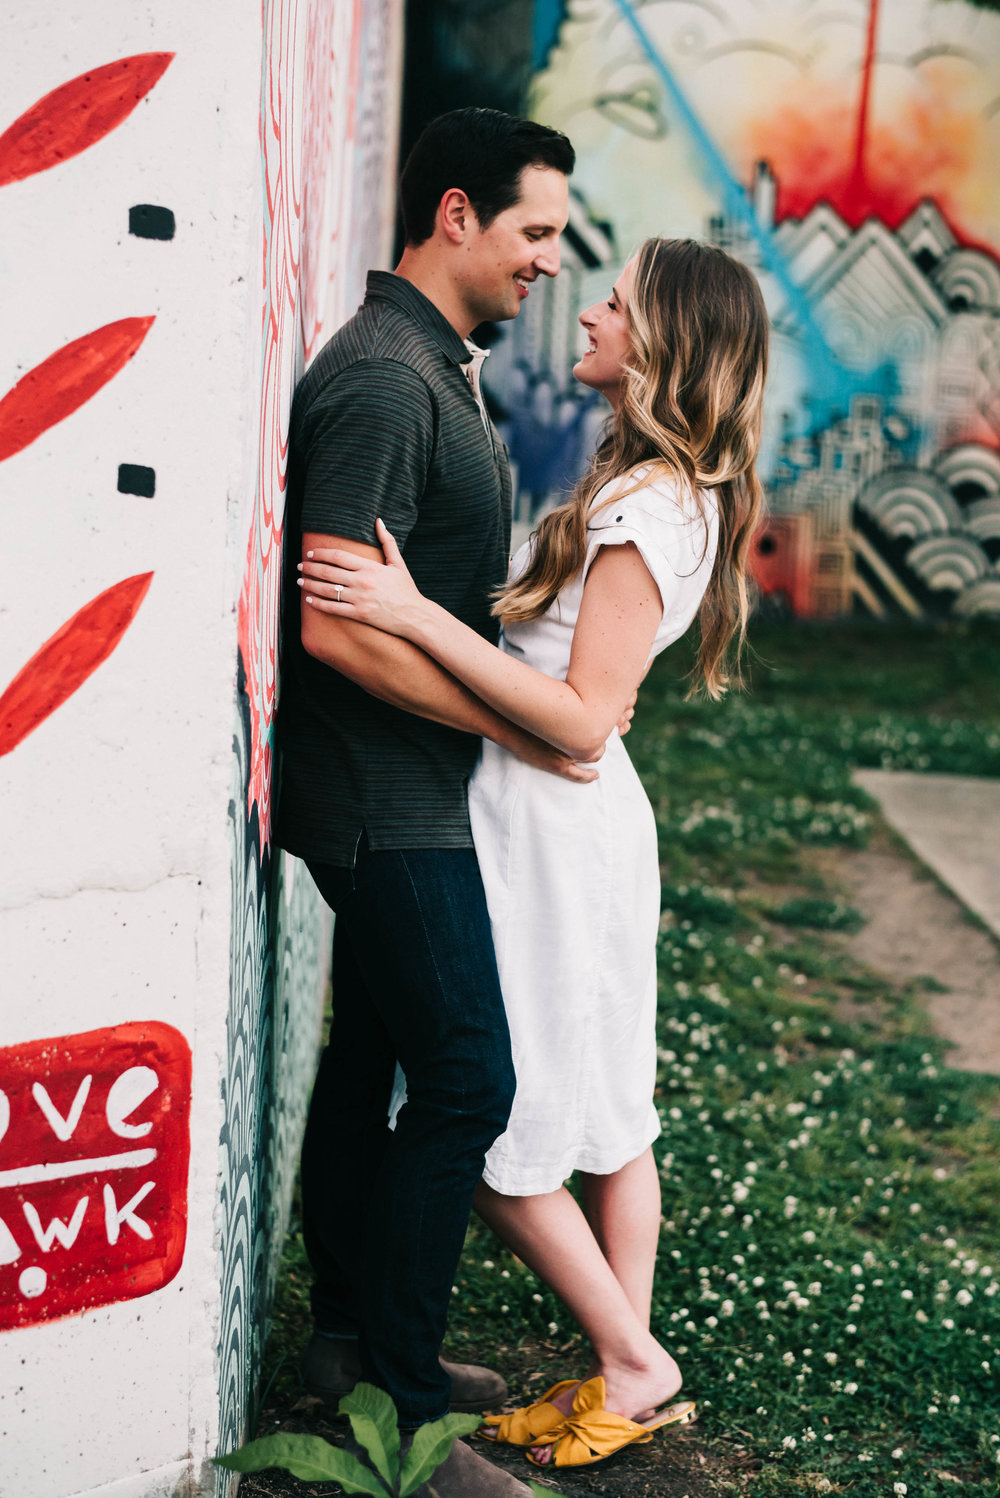 atlanta georgia portland oregon california engagement wedding nontraditional photographer-98.jpg